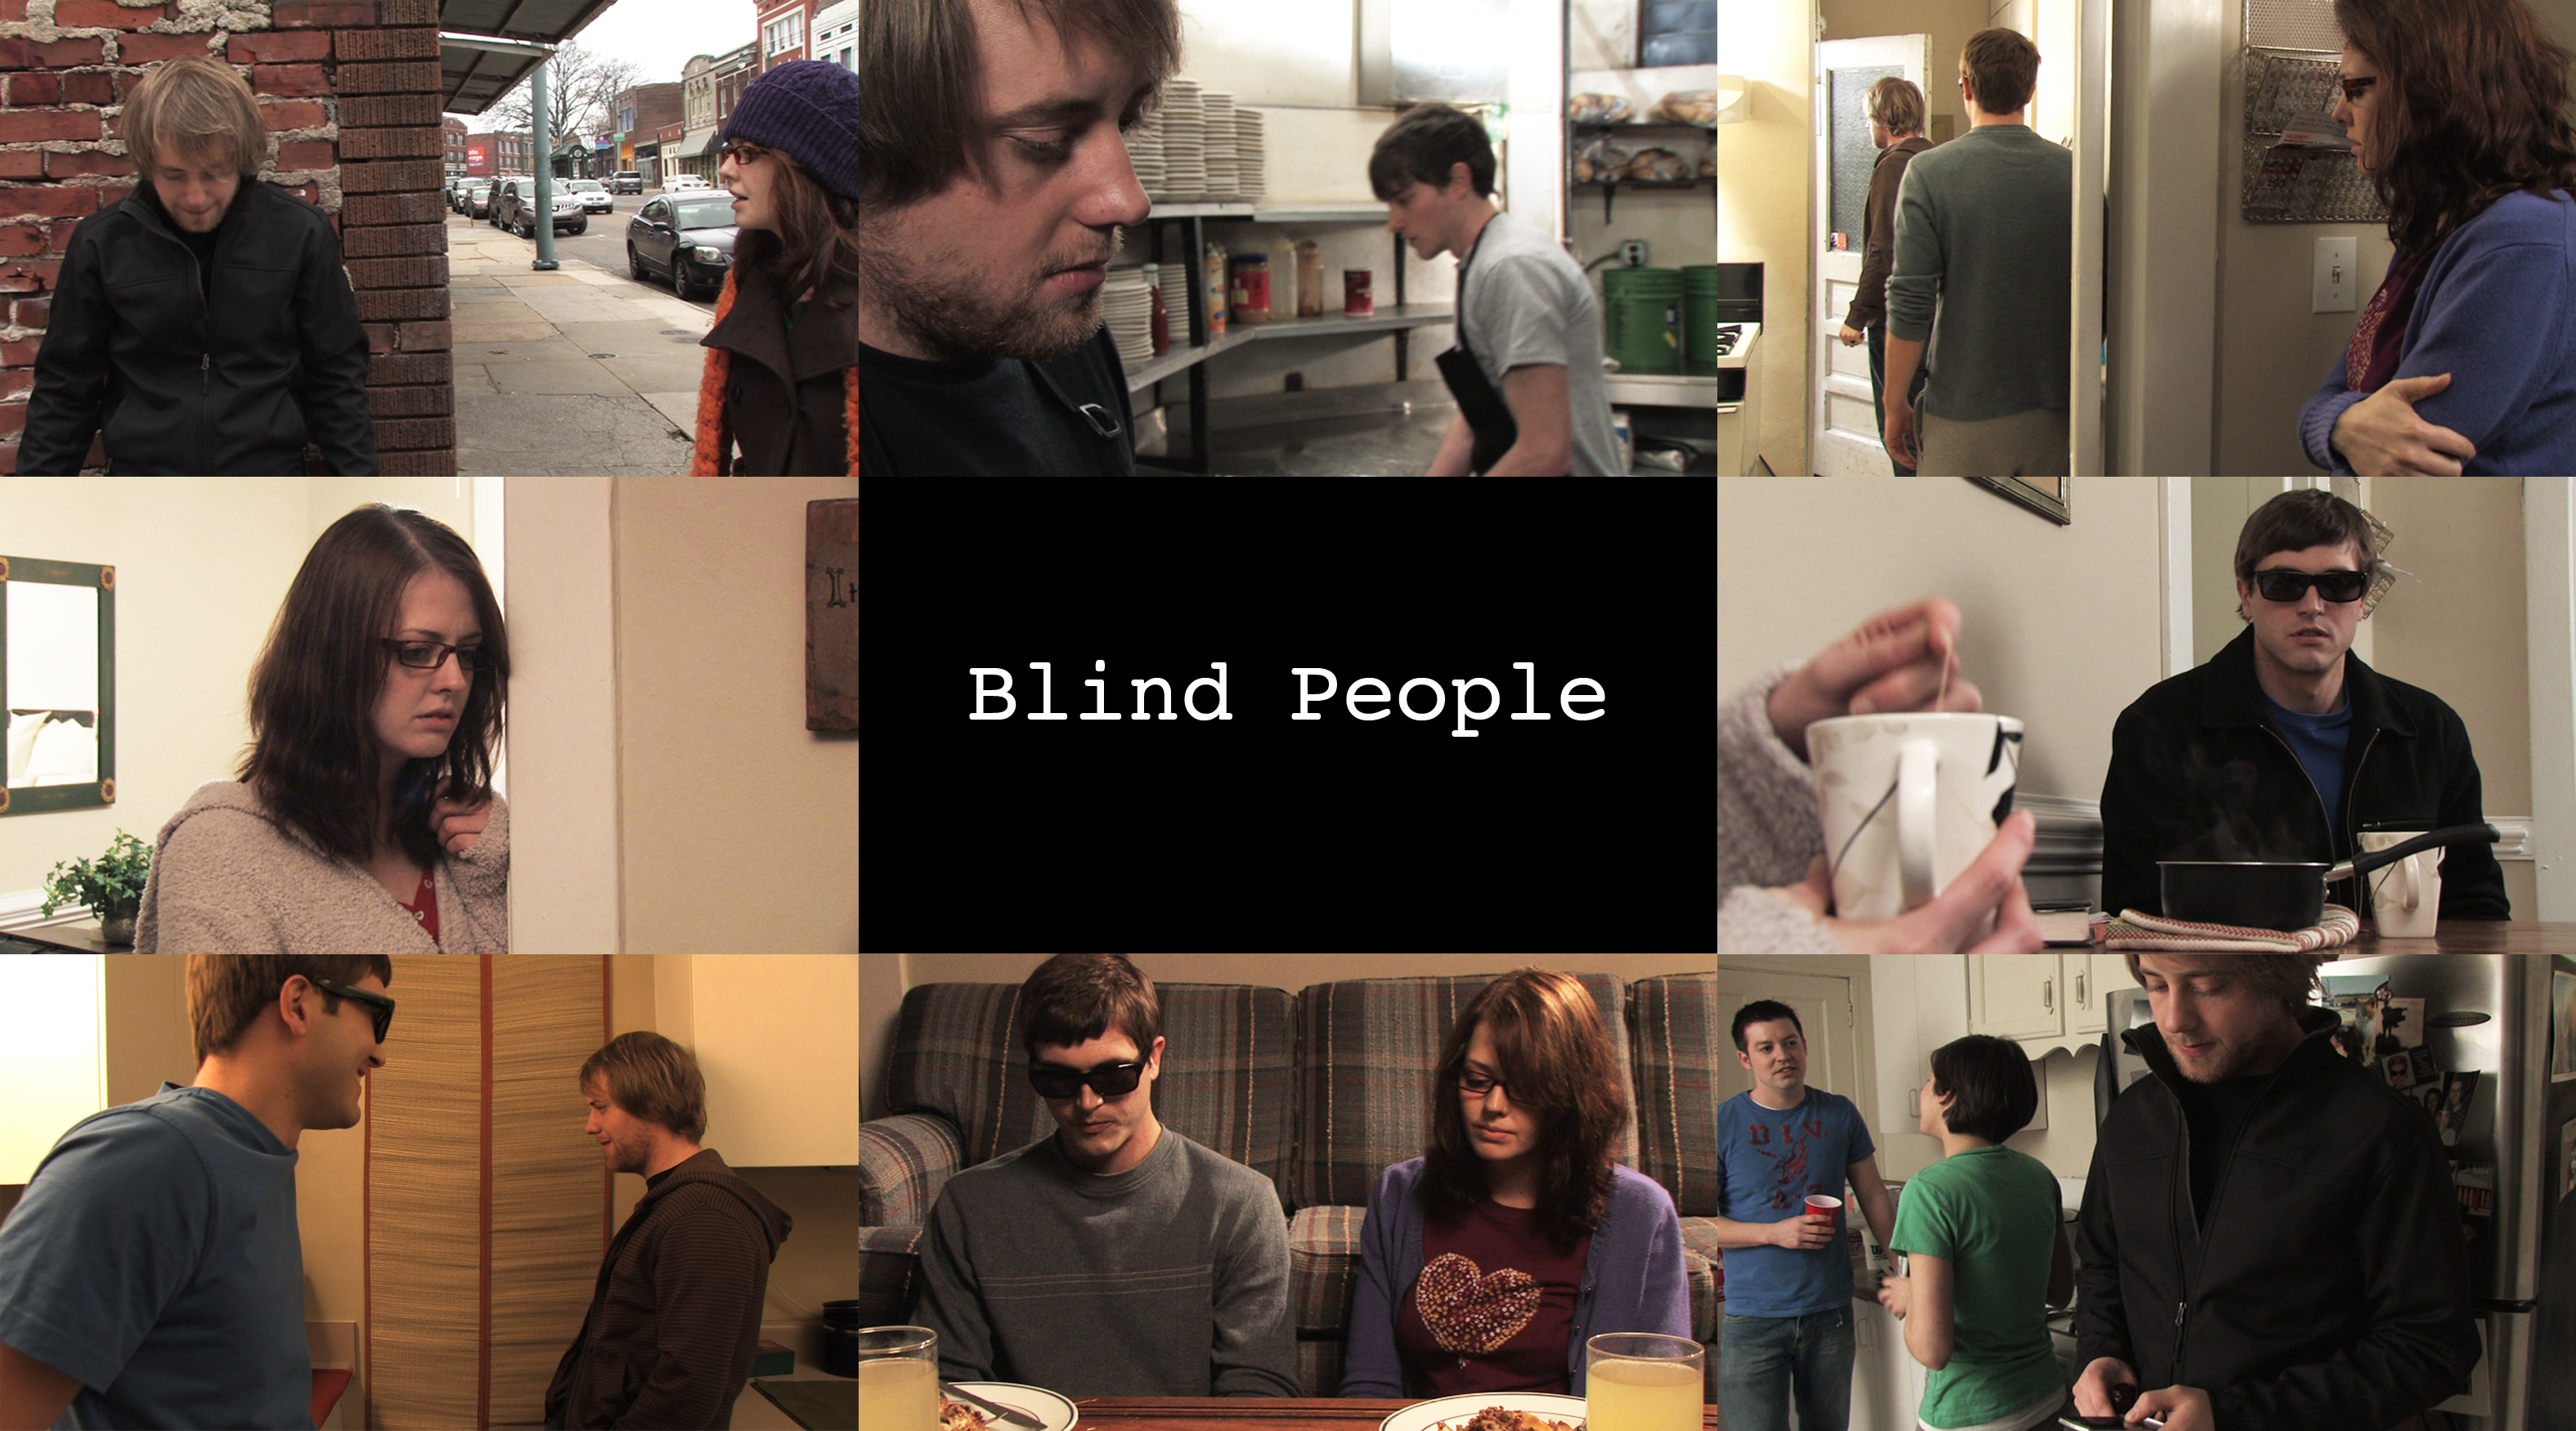 Free Wallpaper Downloads For Quot Blind People Quot 2010